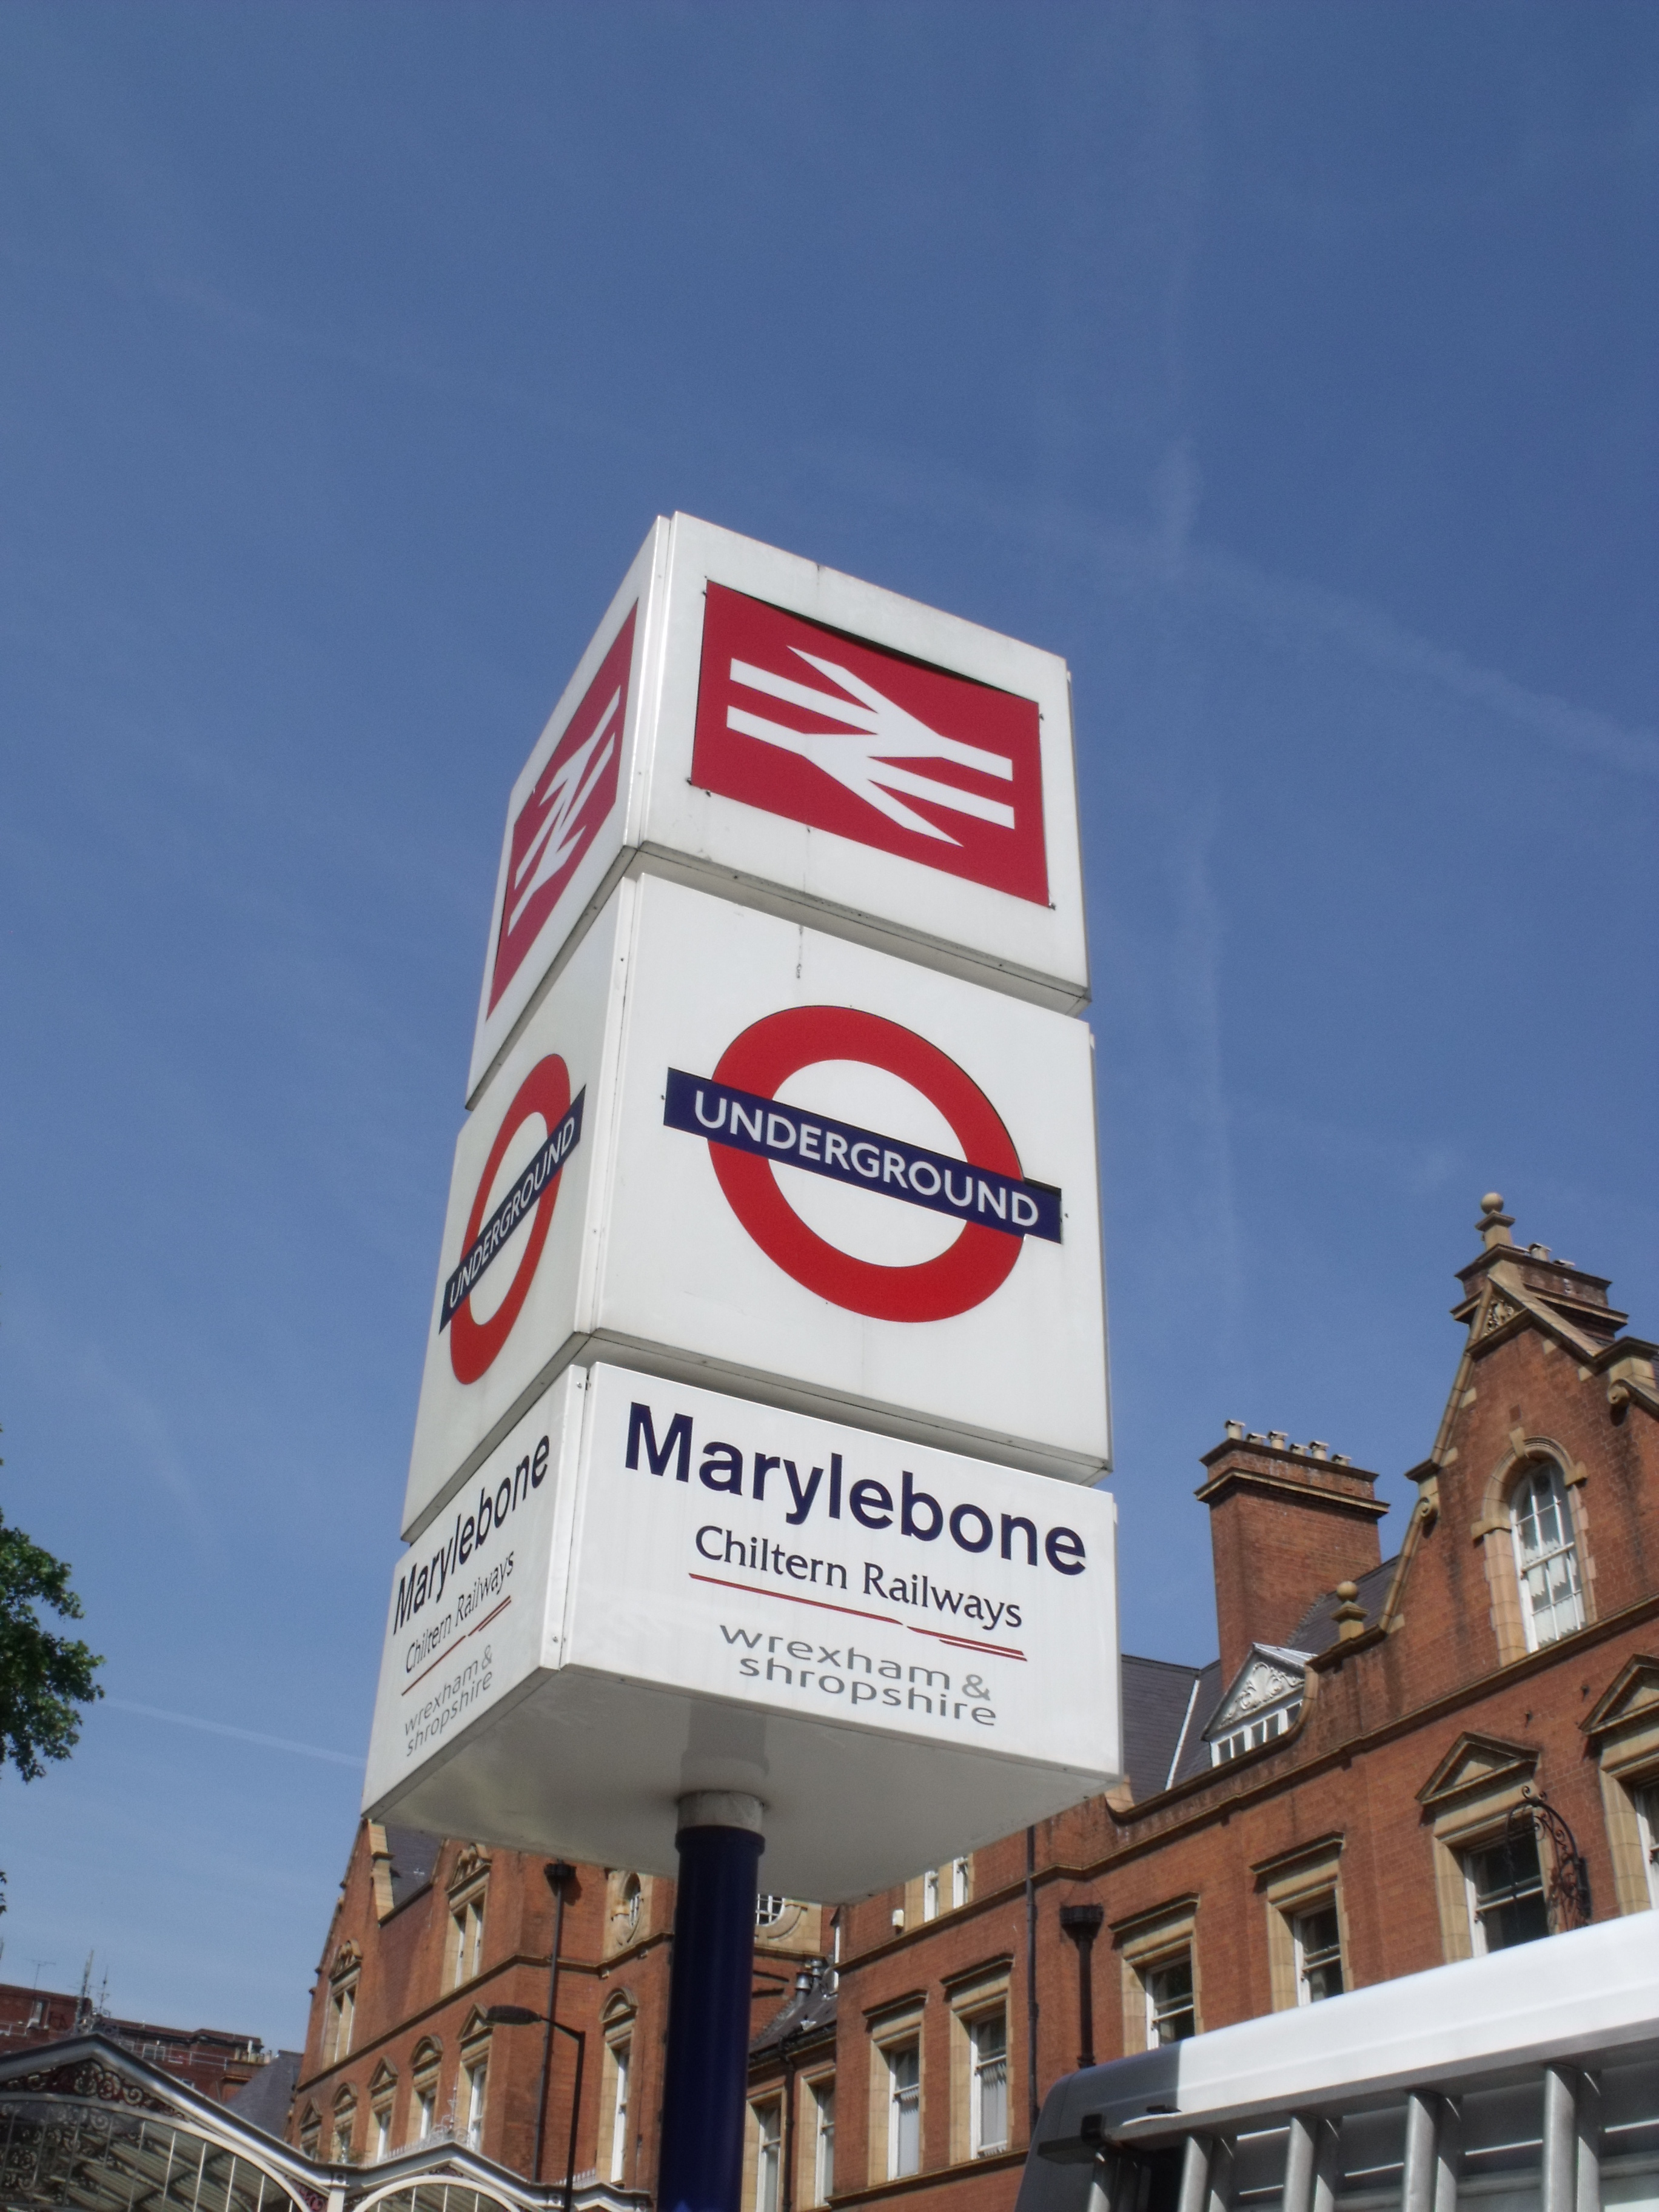 File:London Marylebone Station - main sign - British Rail and